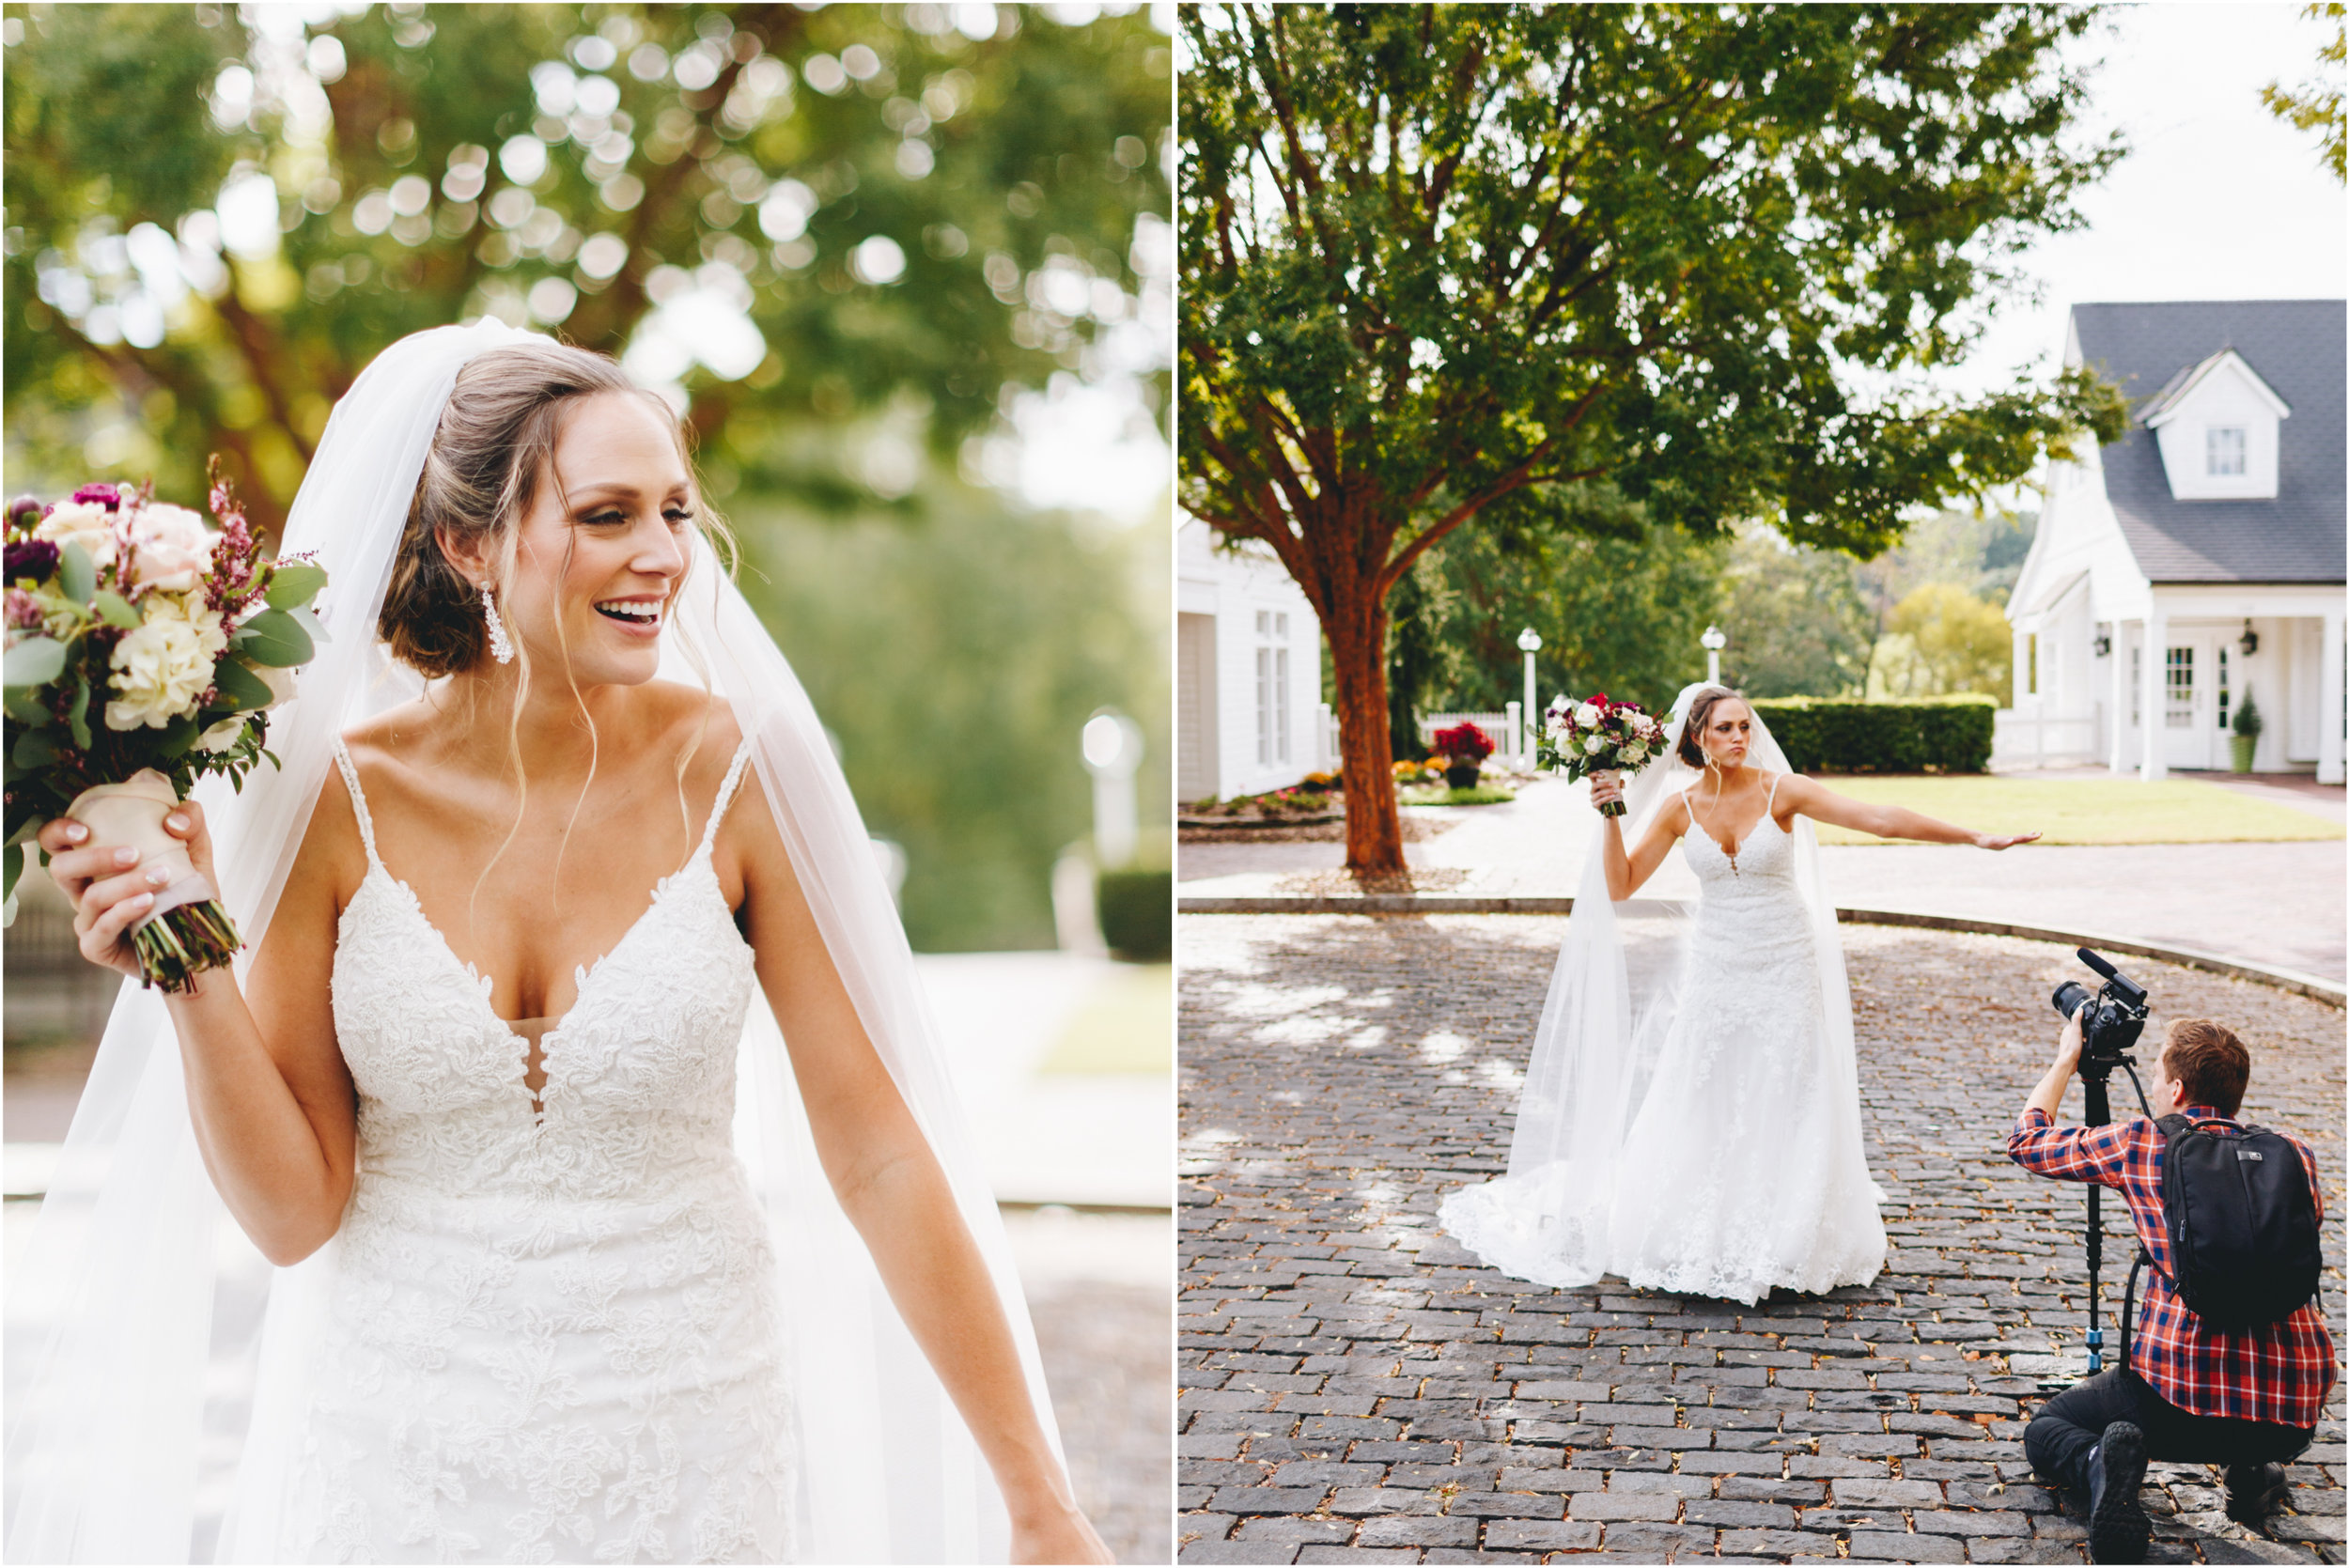 Fun Bridal Portraits